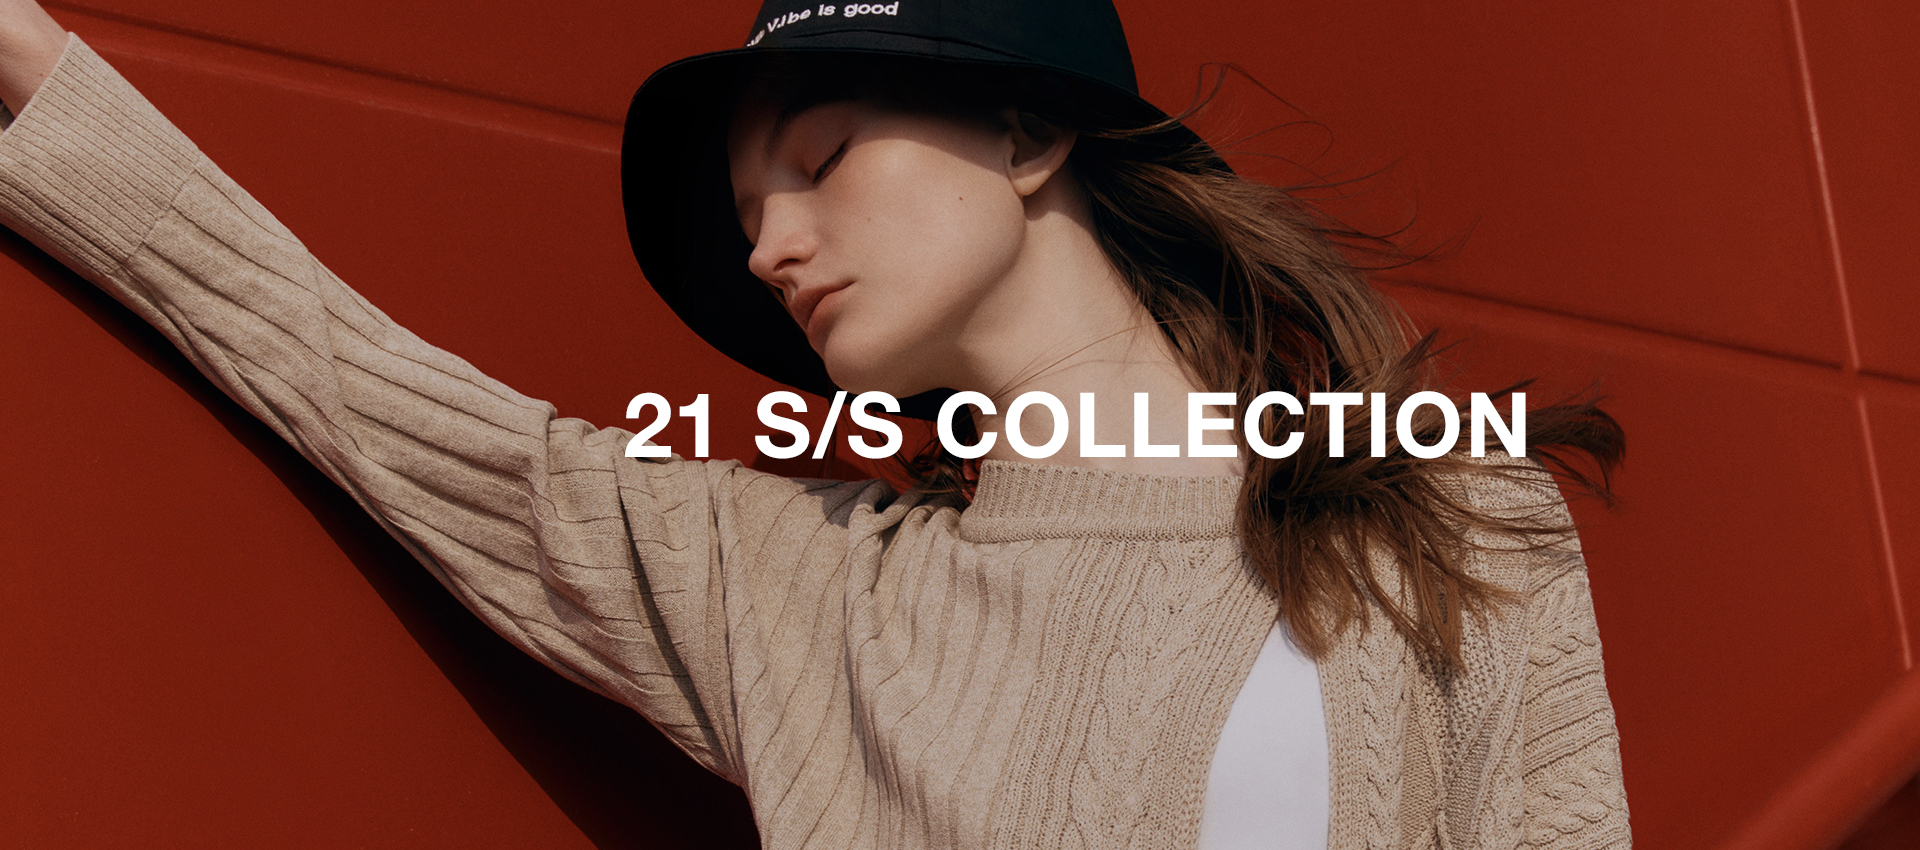 21 S/S COLLECTION